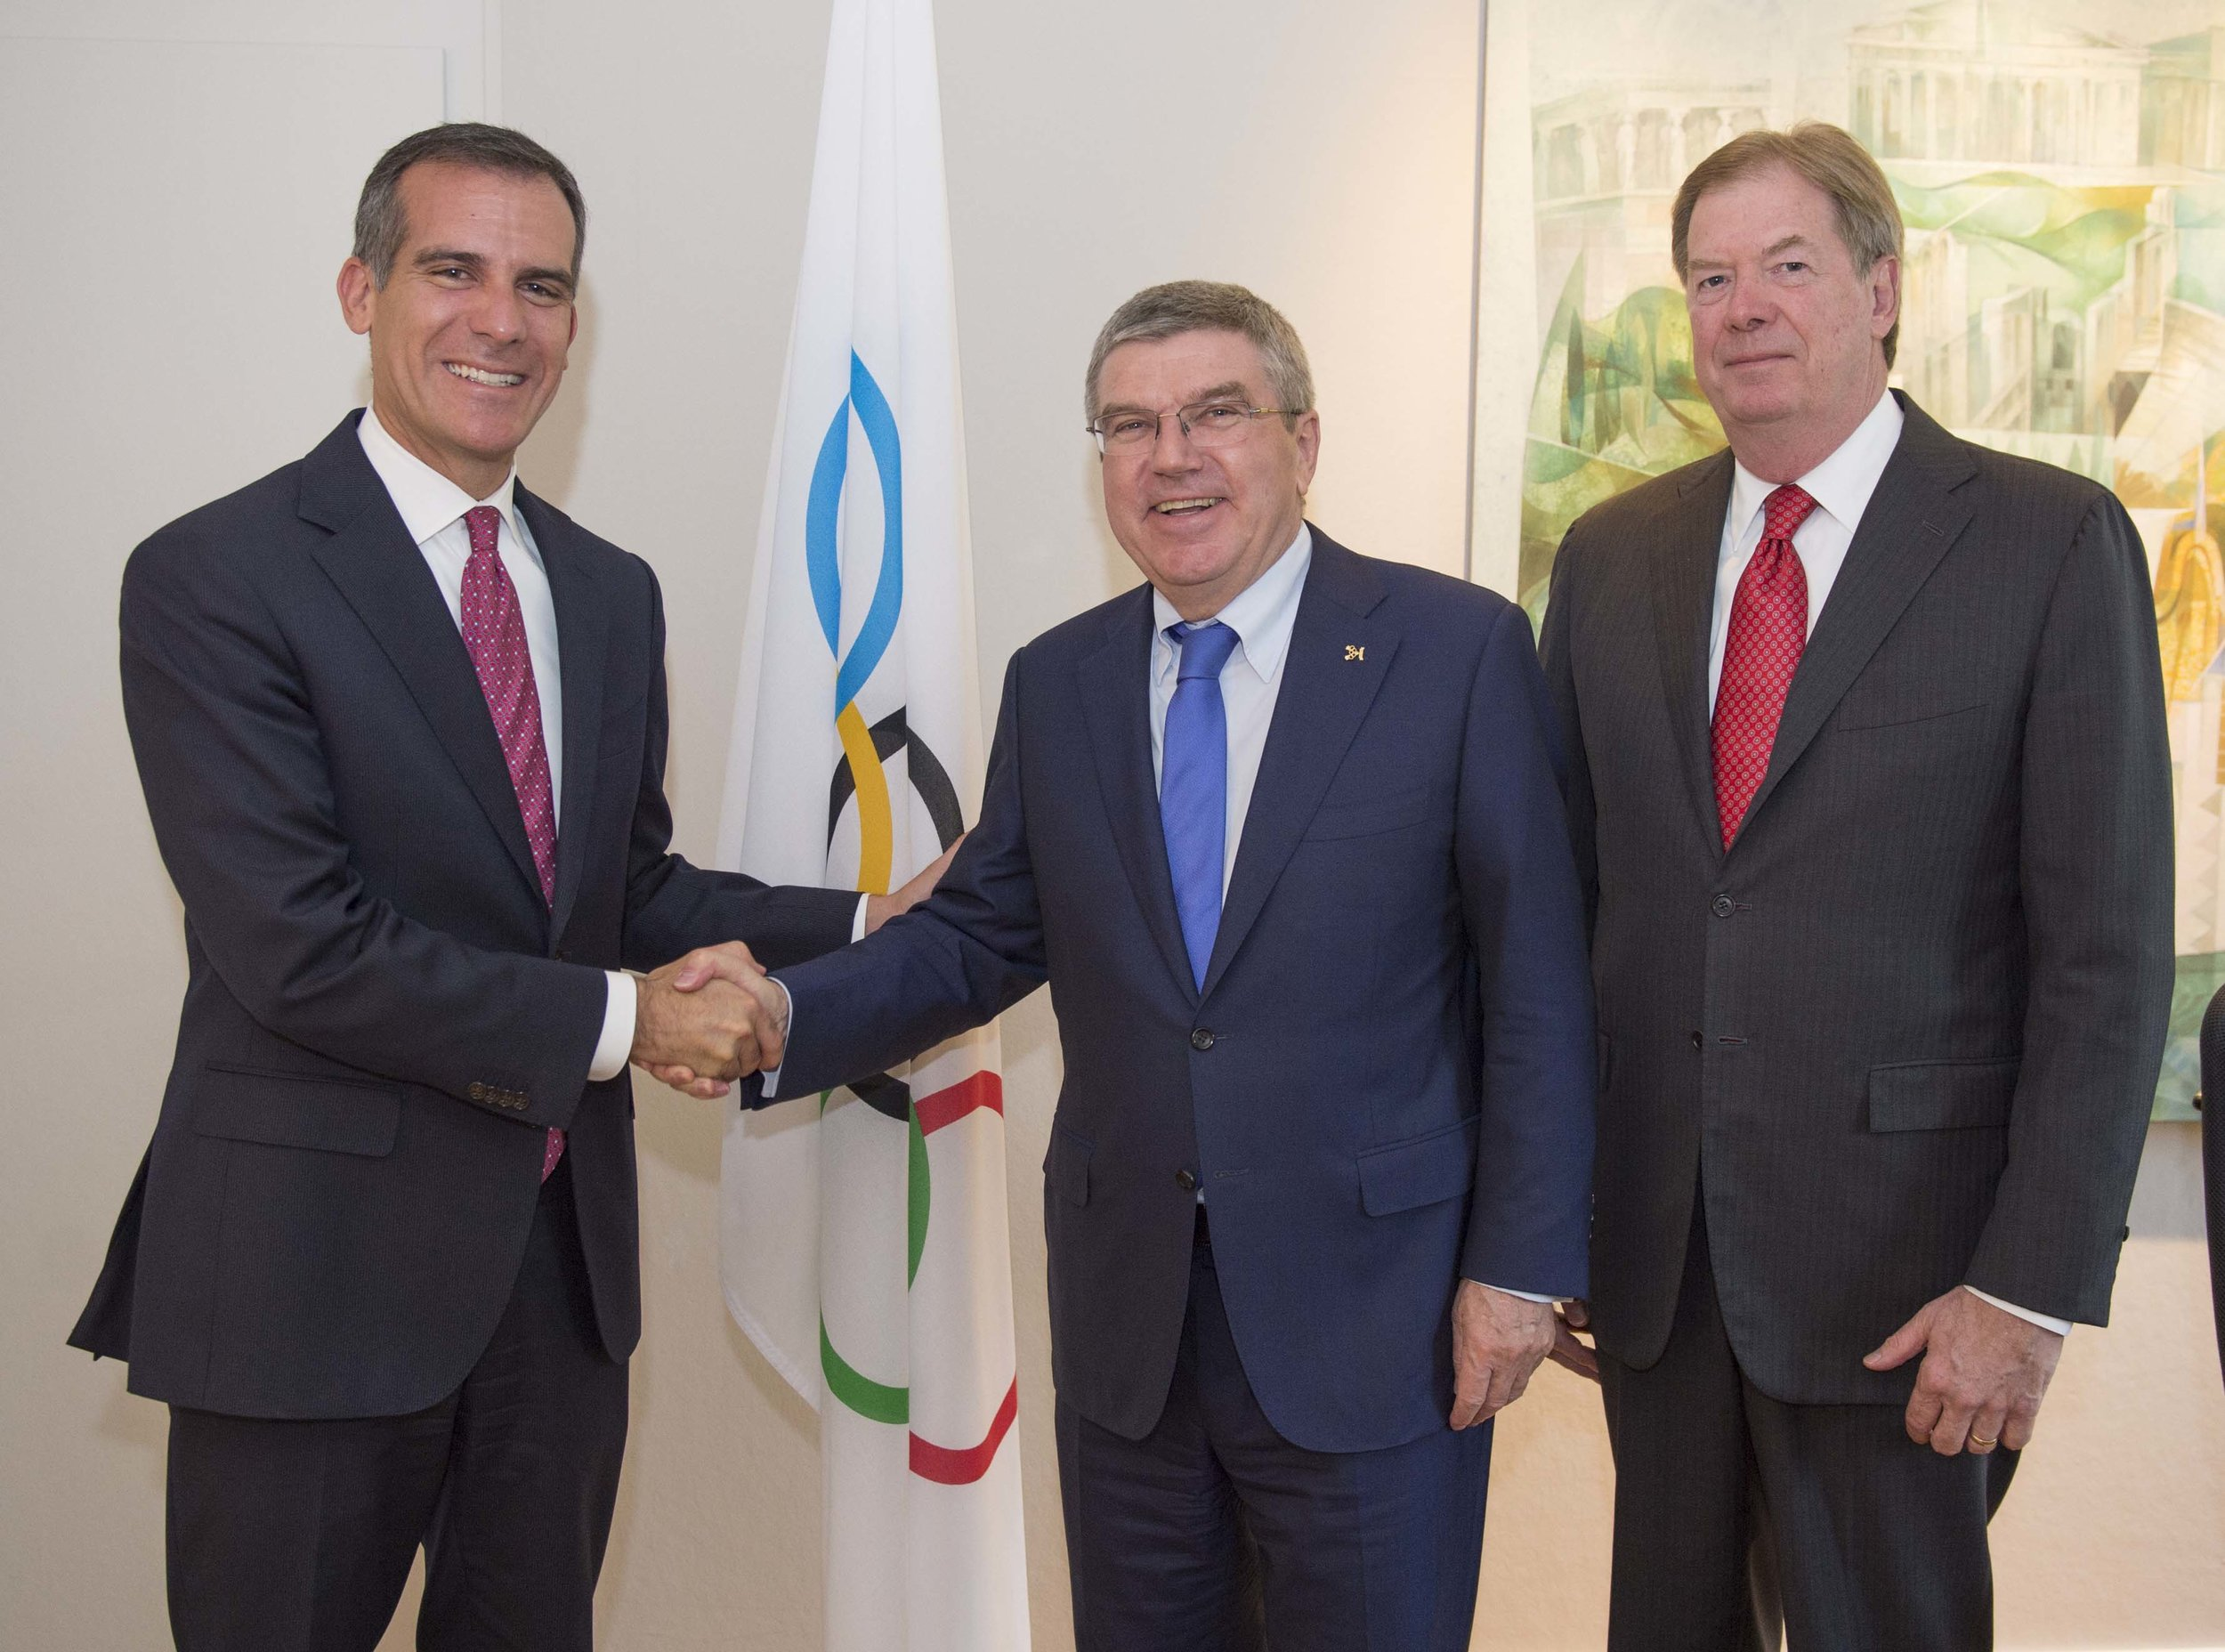 LA mayor Eric Garcetti, IOC president Thomas Bach, USOC board chair Larry Probst // photo LA24